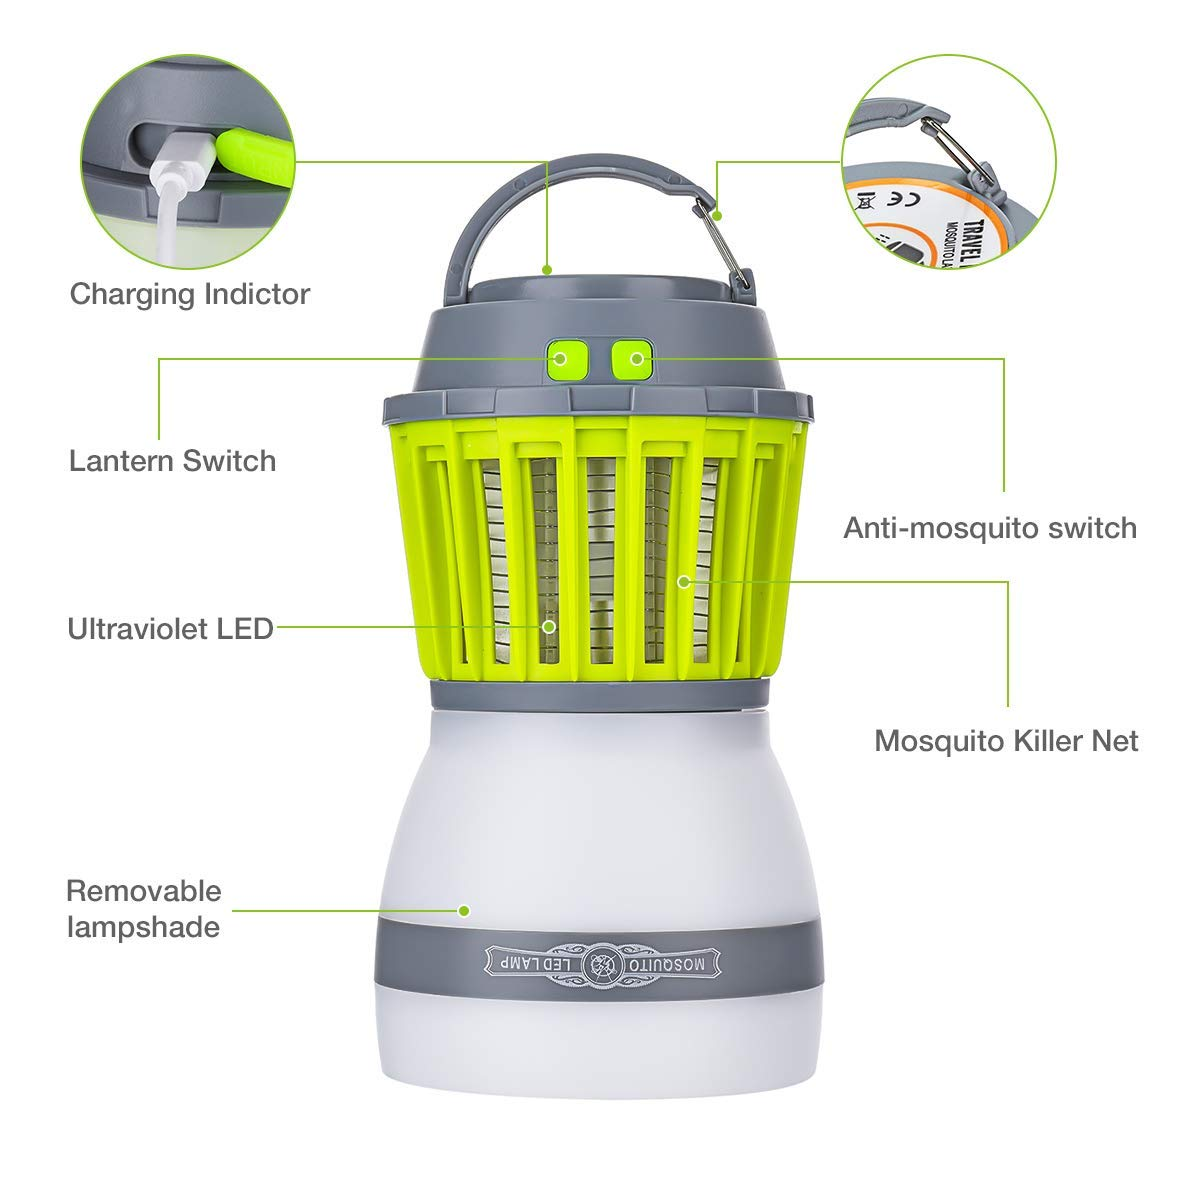 2 in 1 Camping Lamp Mosquito Killer, USB Recharge Mosquito Killer Lamp, IP67 Waterproof Anti-Mosquito LED Latern, 2000mAh Portable Tent Lamp for Indoor and Outdoor Use